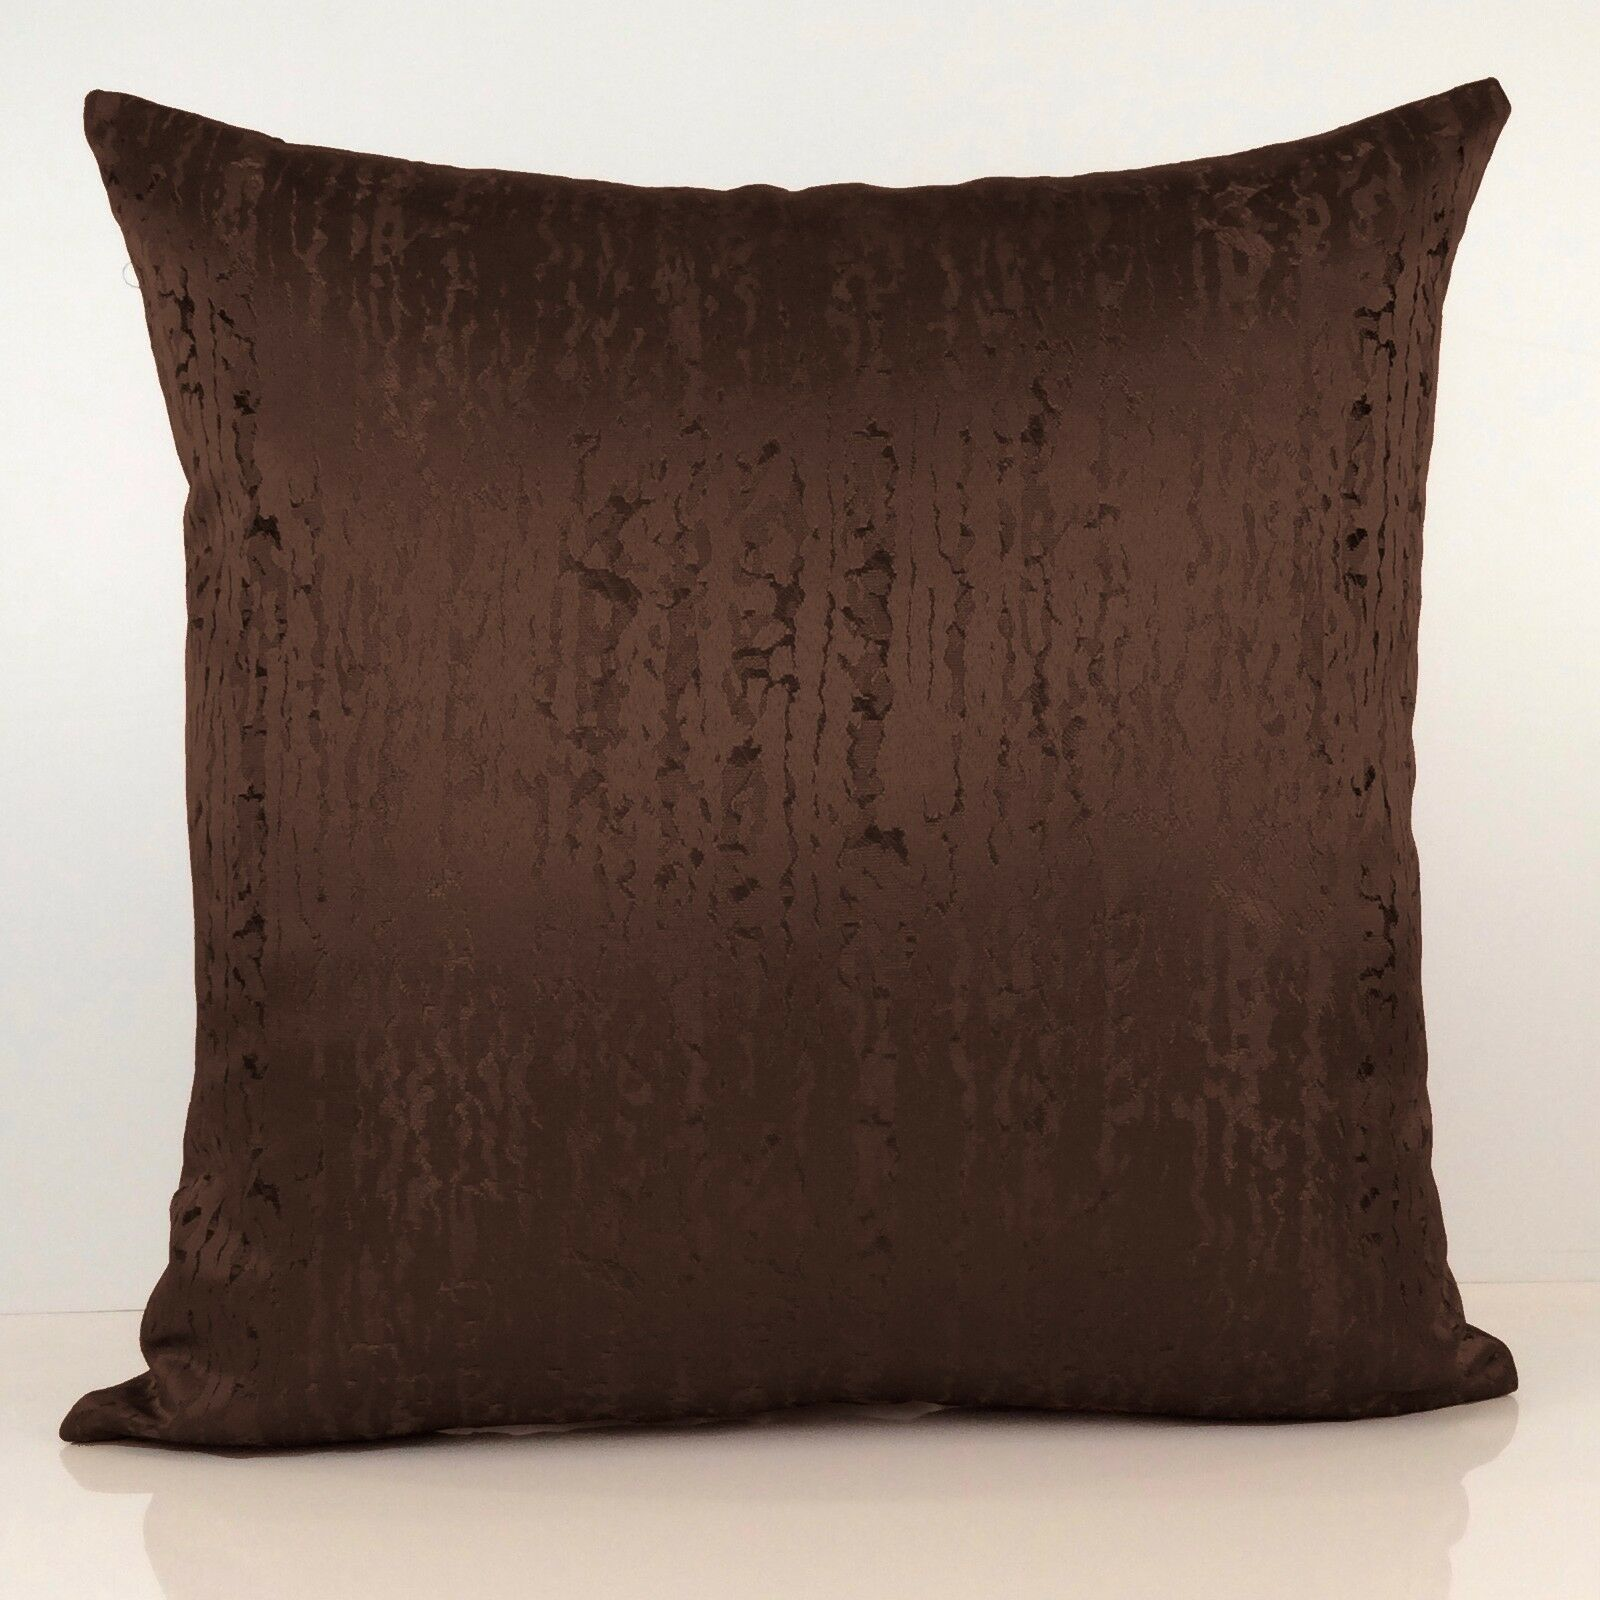 Dark Chocolate Brown Decorative Throw Pillow Cover Geometric Pattern For Sale Online